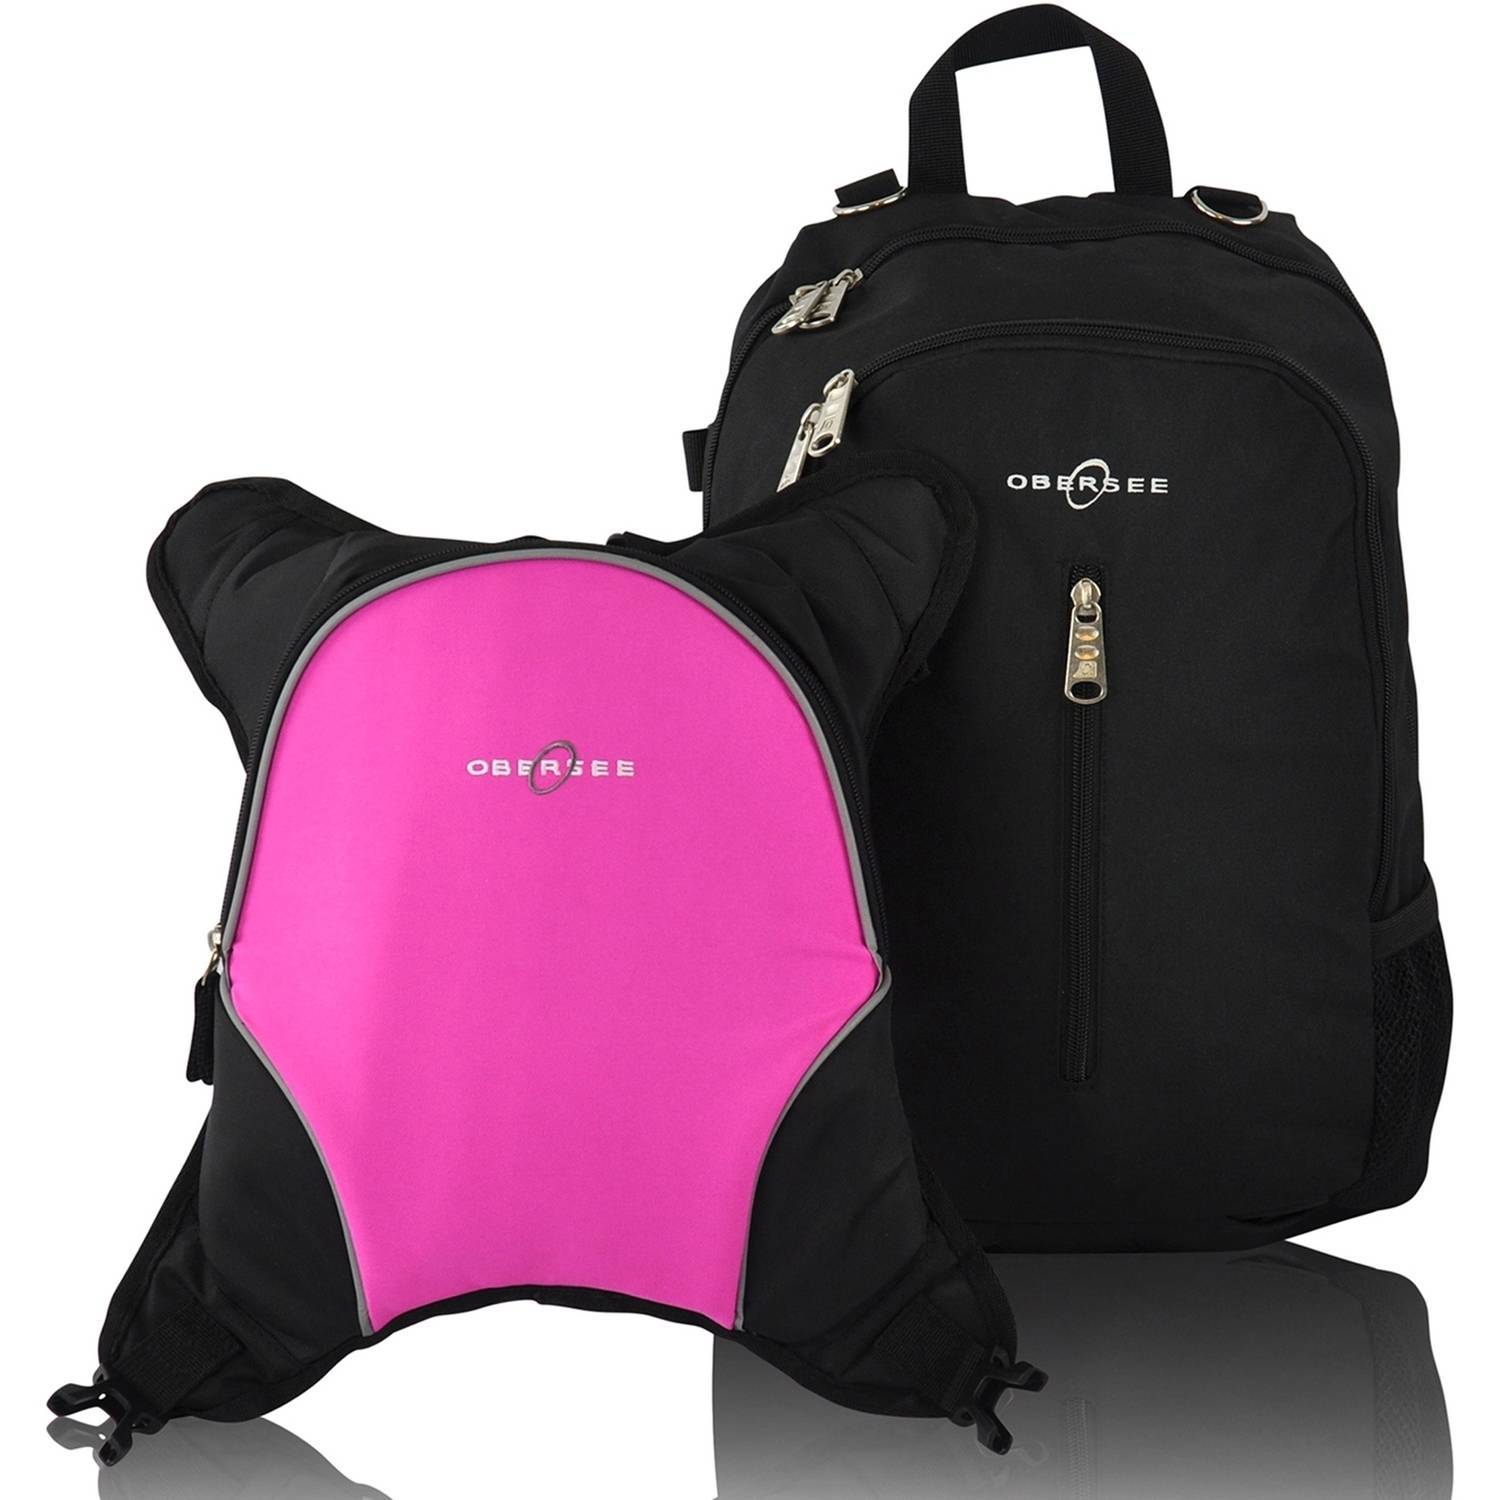 Obersee Rio Diaper Bag Backpack with Detachable Cooler, Black Pink by Obersee